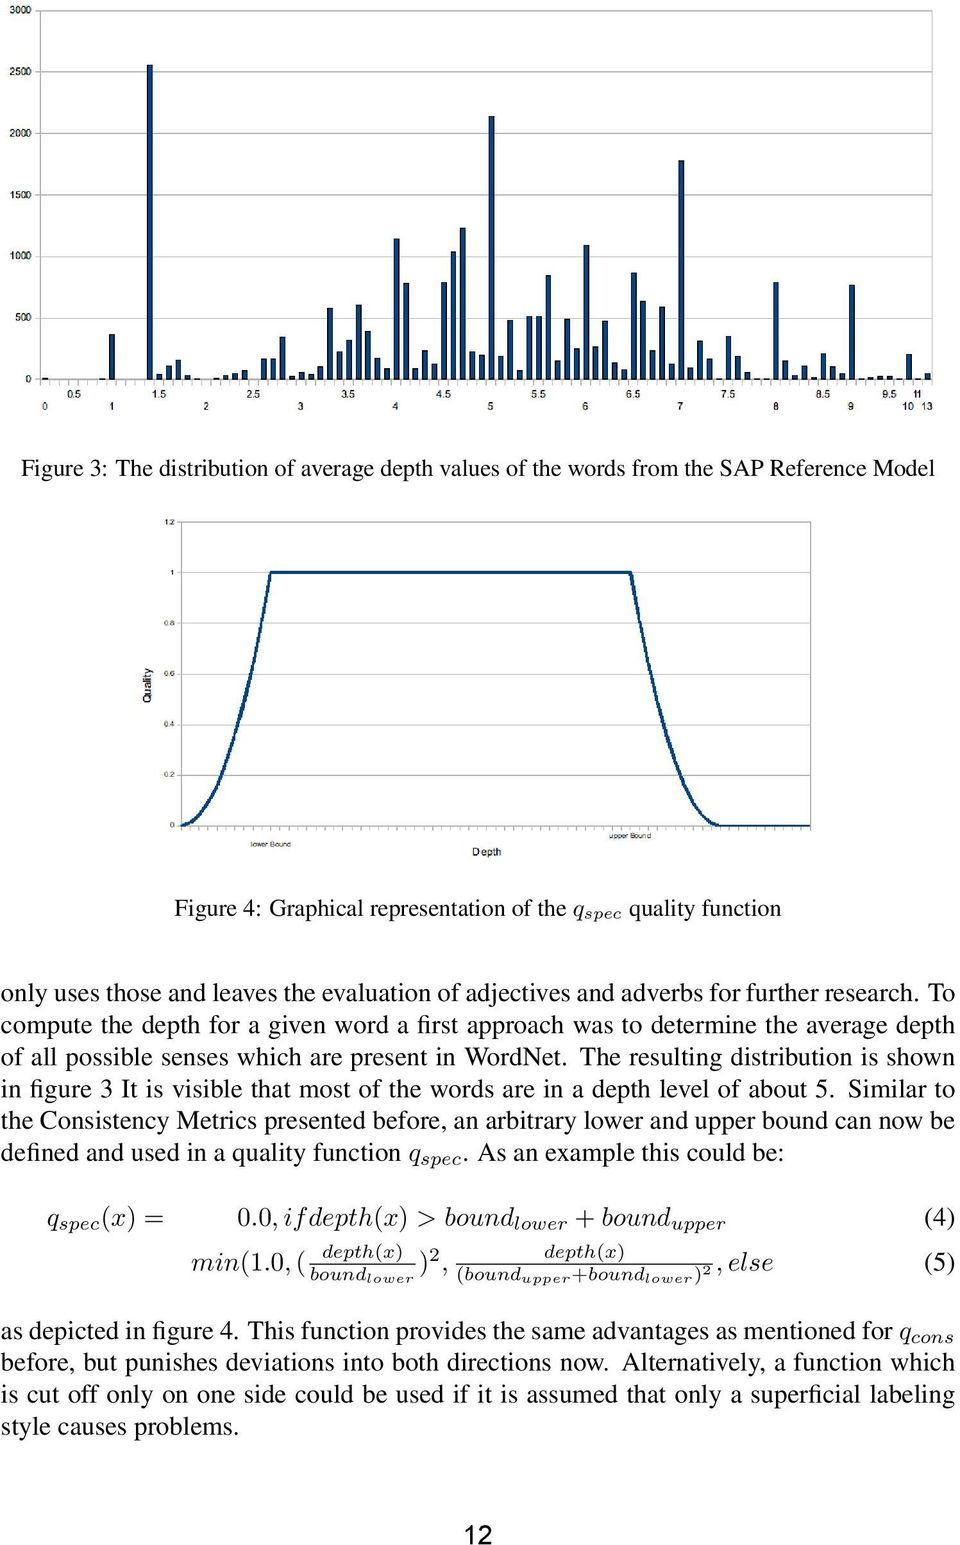 To compute the depth for a given word a first approach was to determine the average depth of all possible senses which are present in WordNet.